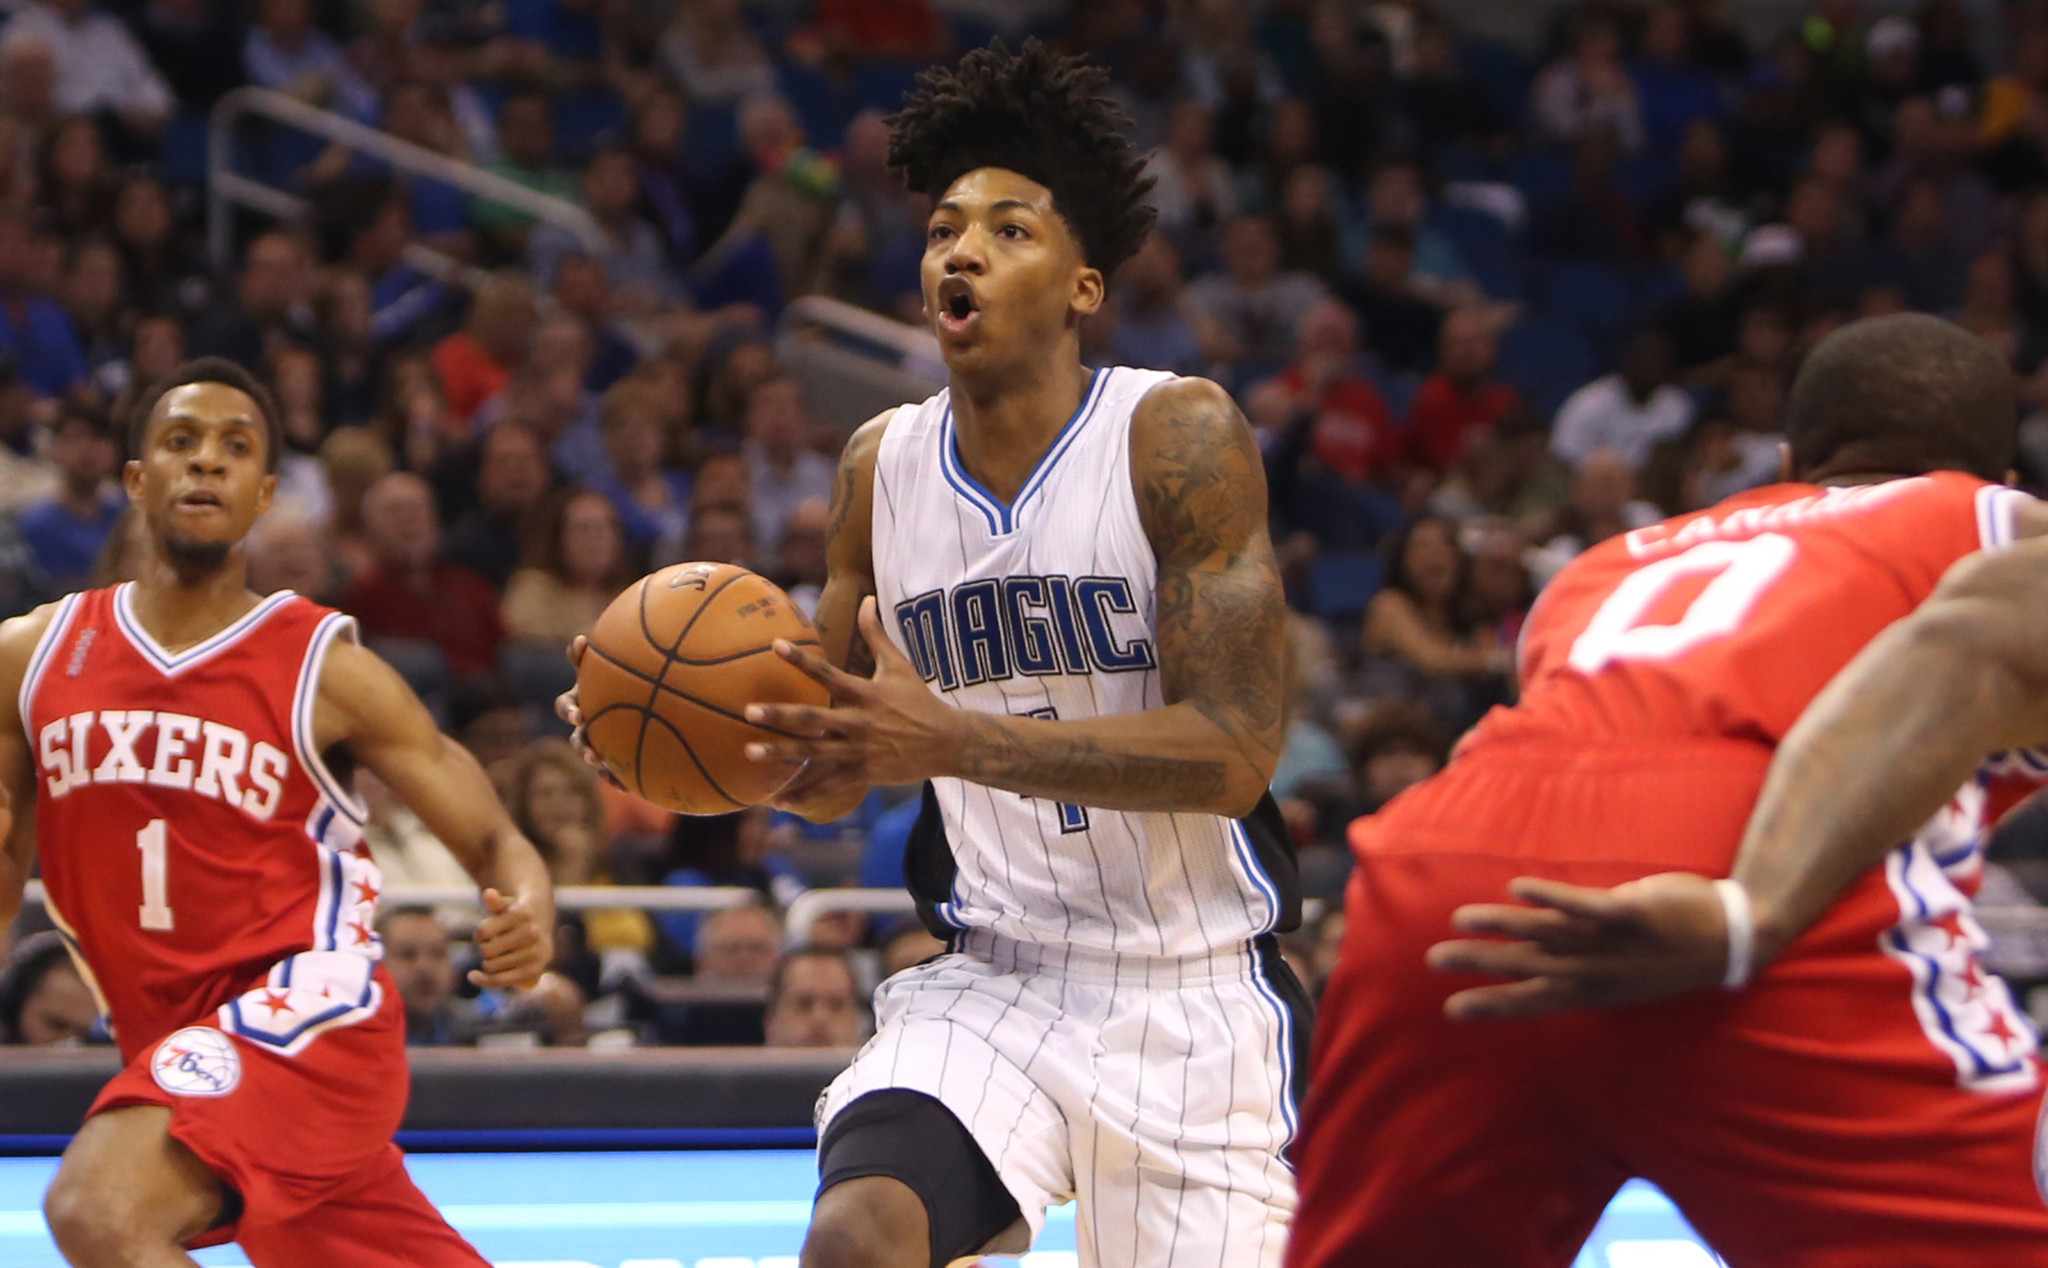 Magic s Elfrid Payton struggling to fill Jameer Nelson s shoes